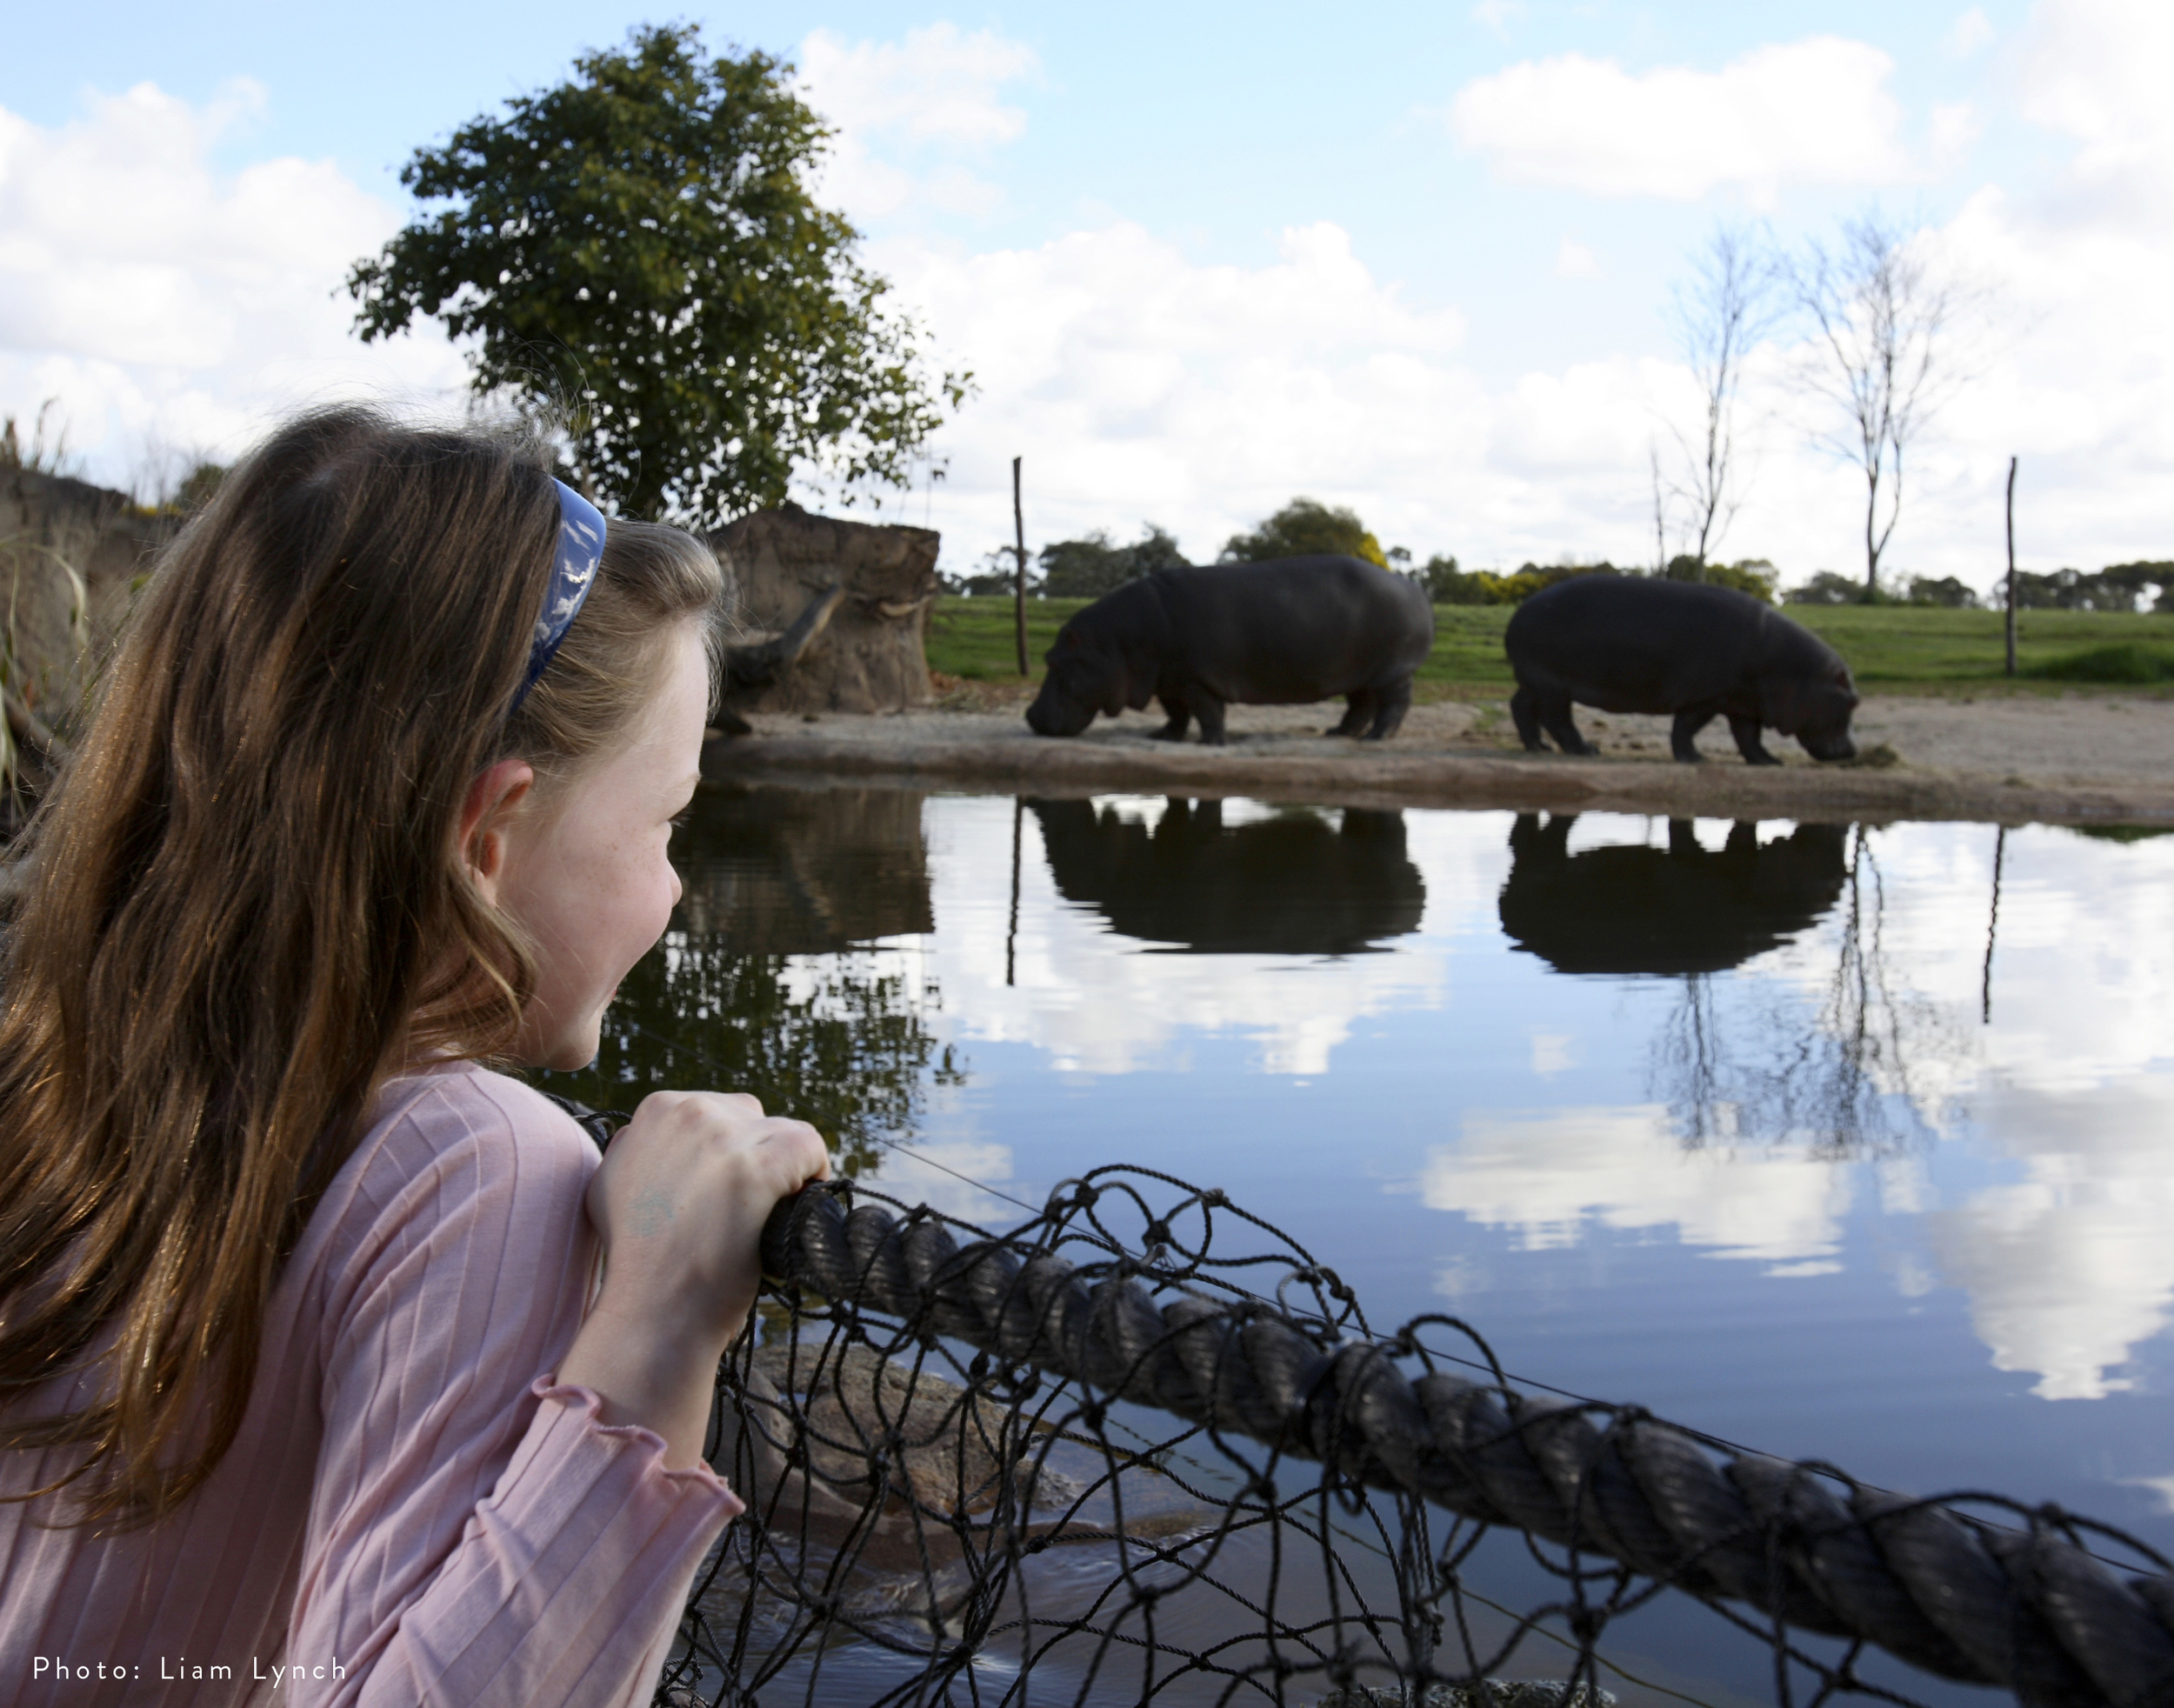 Werribee Open Range Zoo | Hippo River